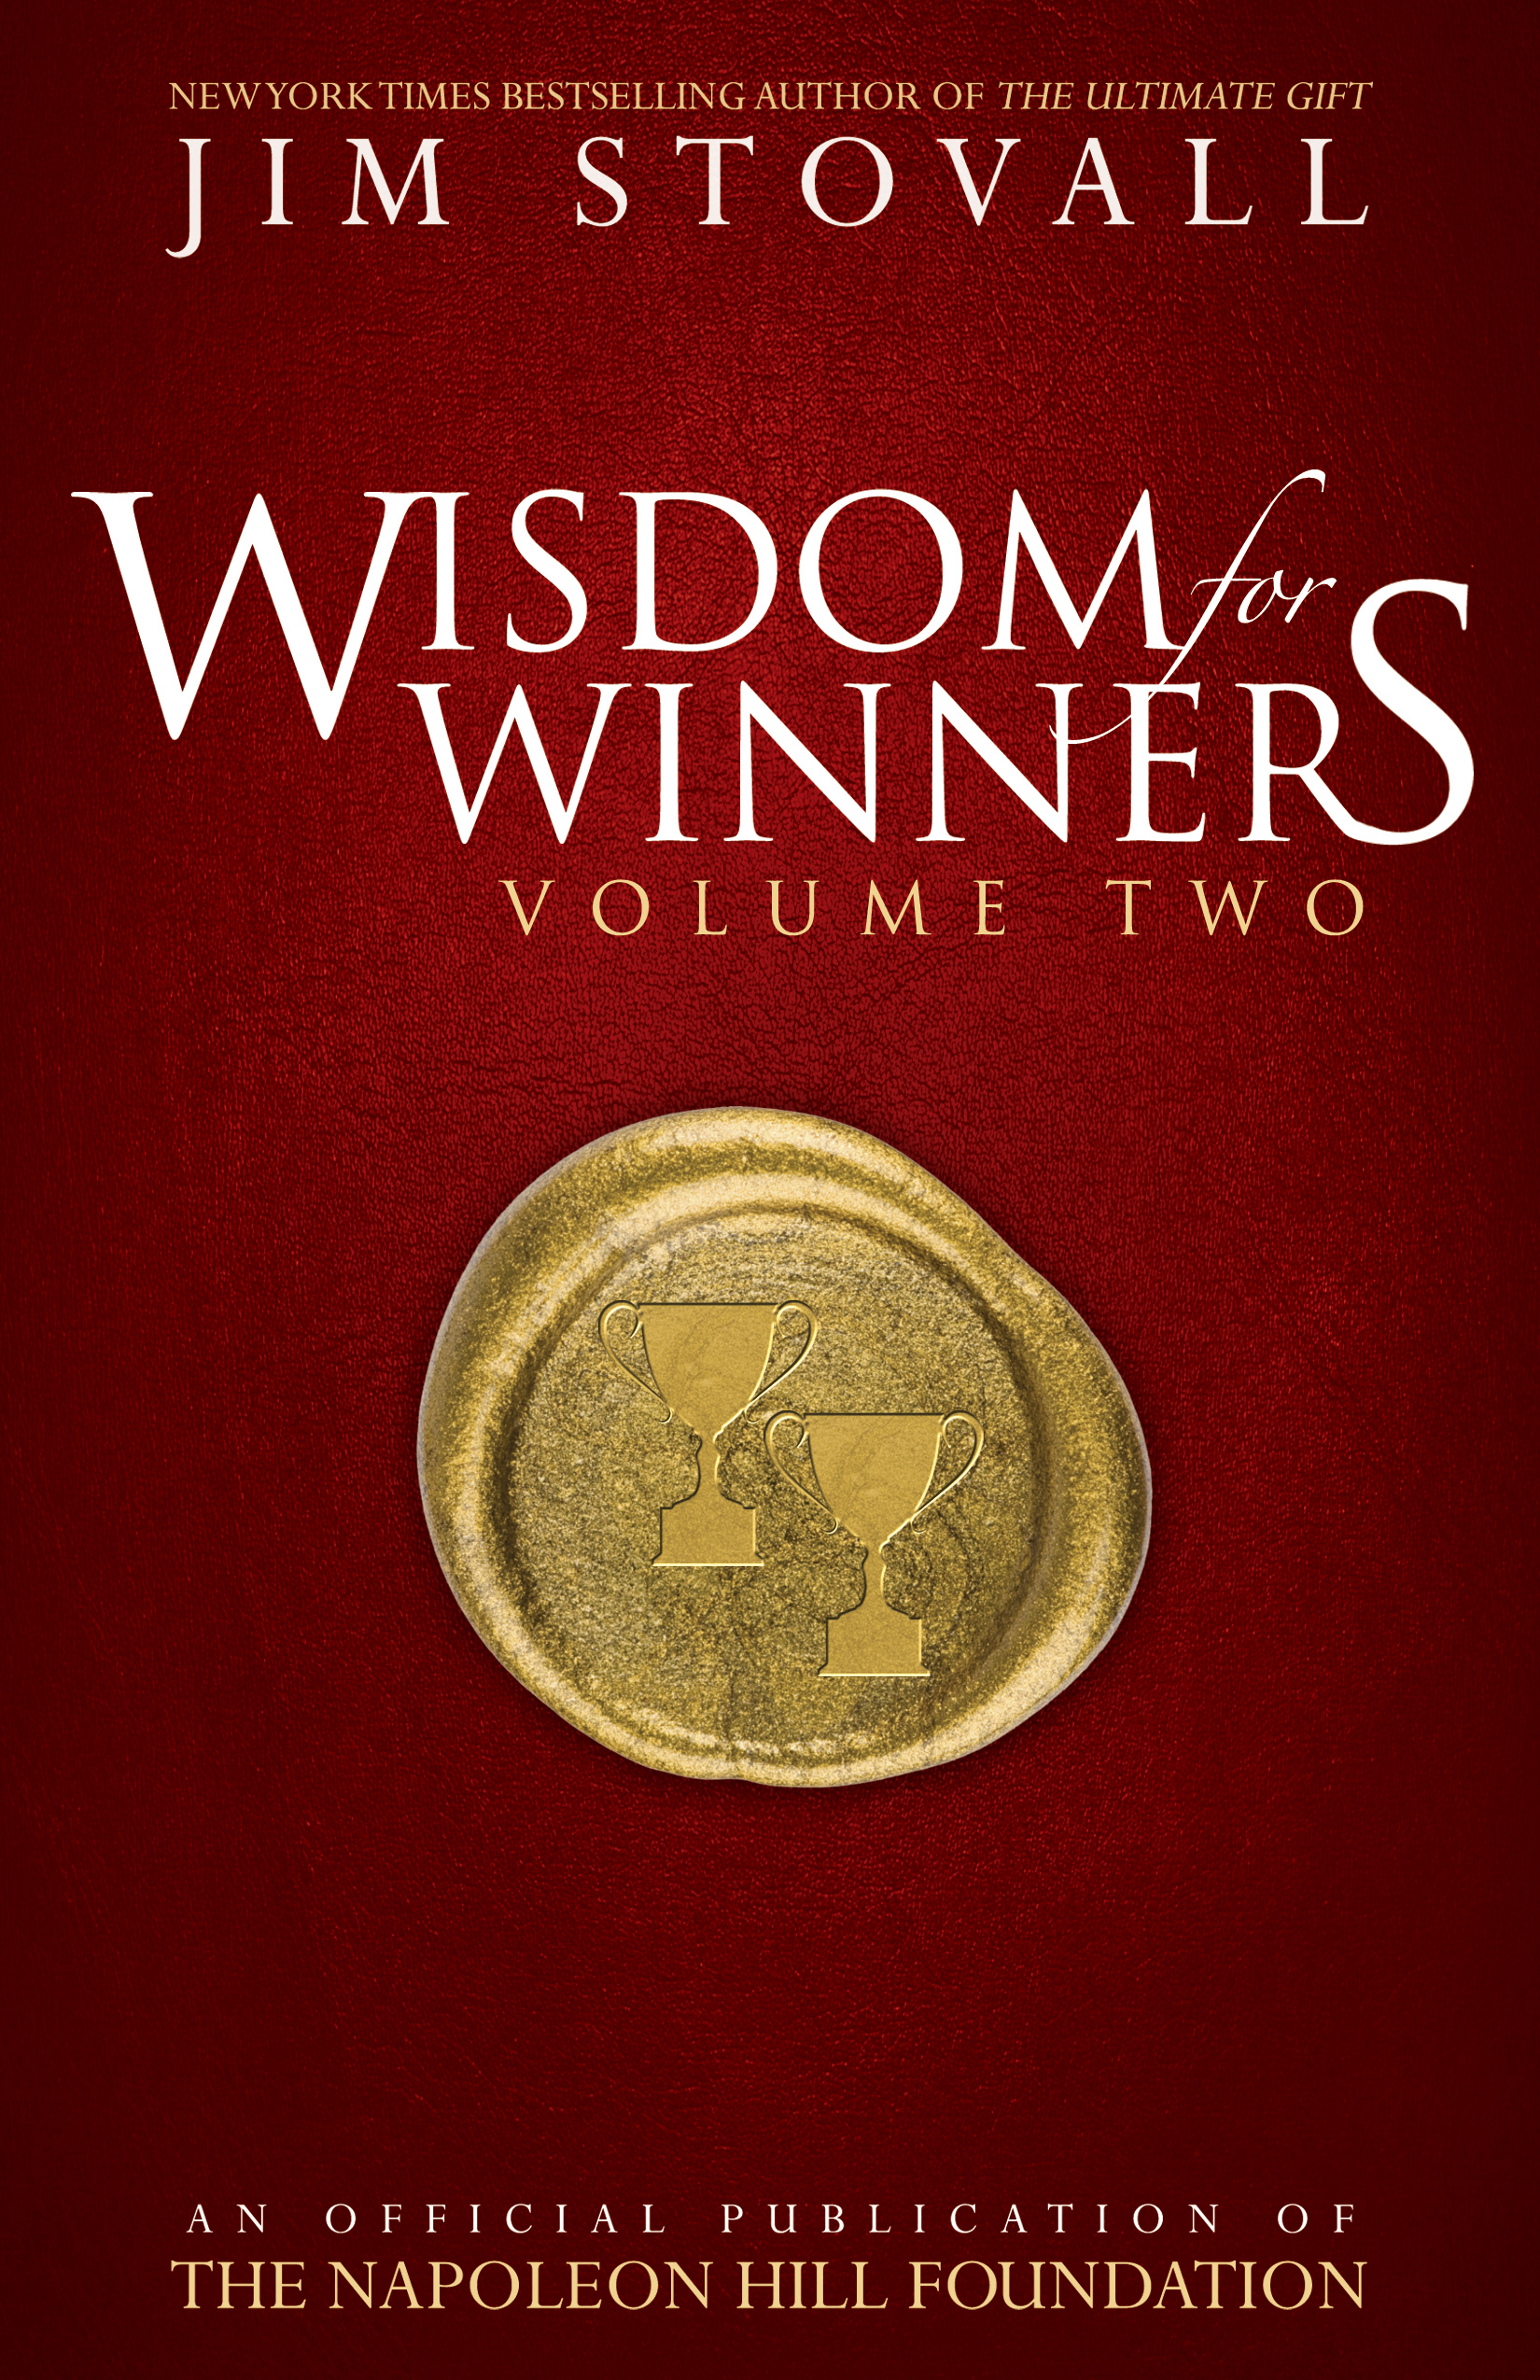 Wisdom for Winners Volume Two - Jim Stovall